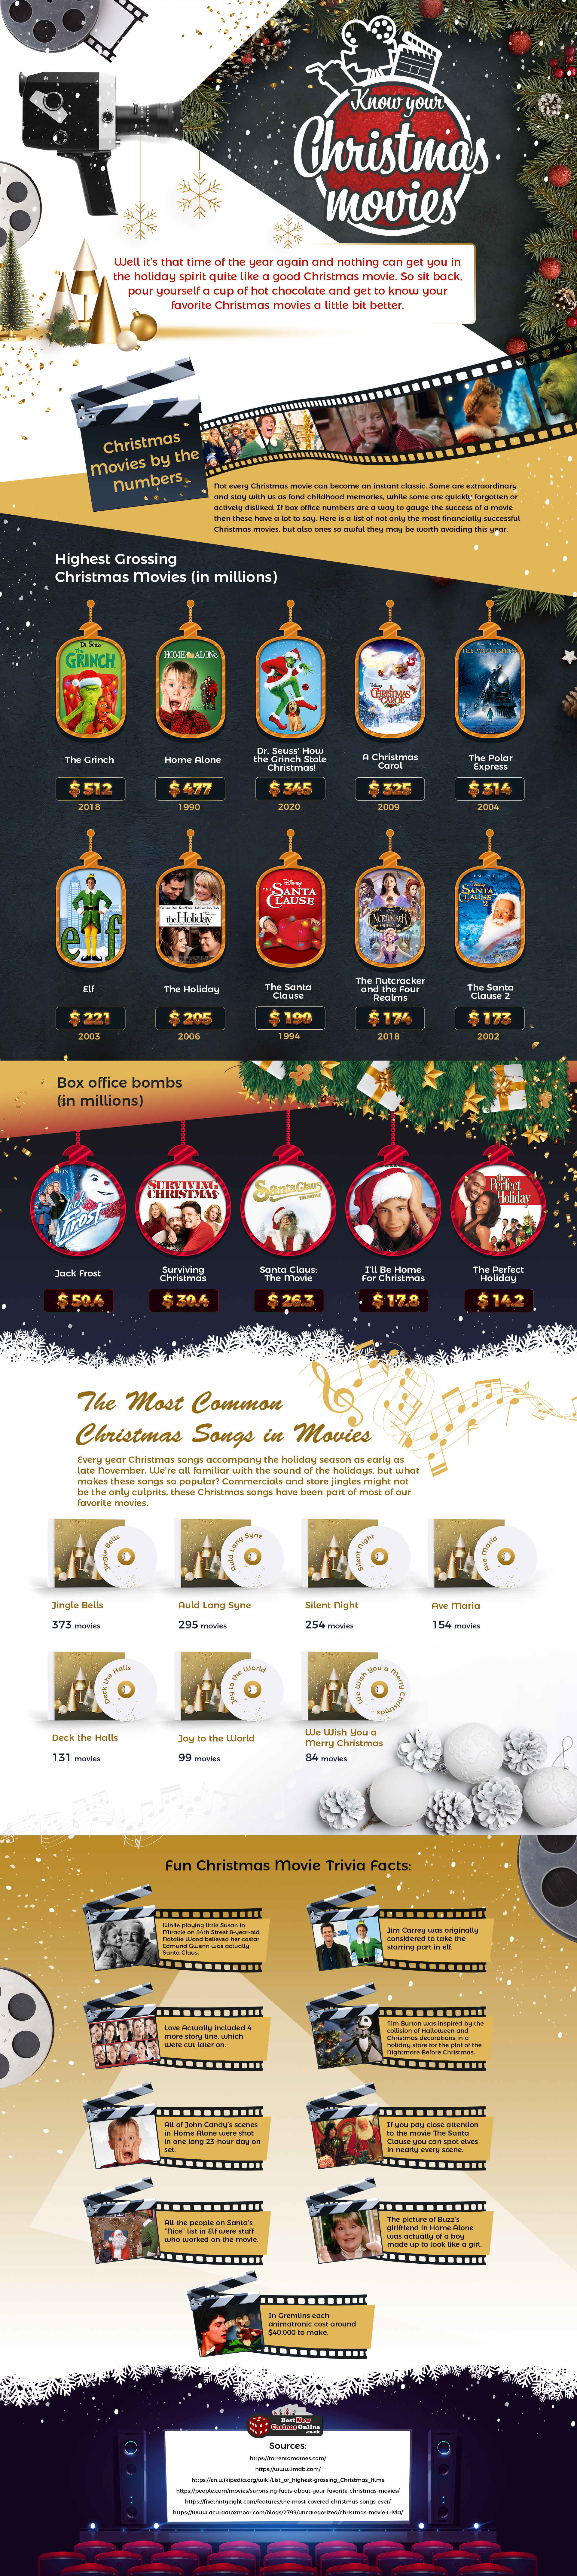 Know Your Christmas Movies Infographic